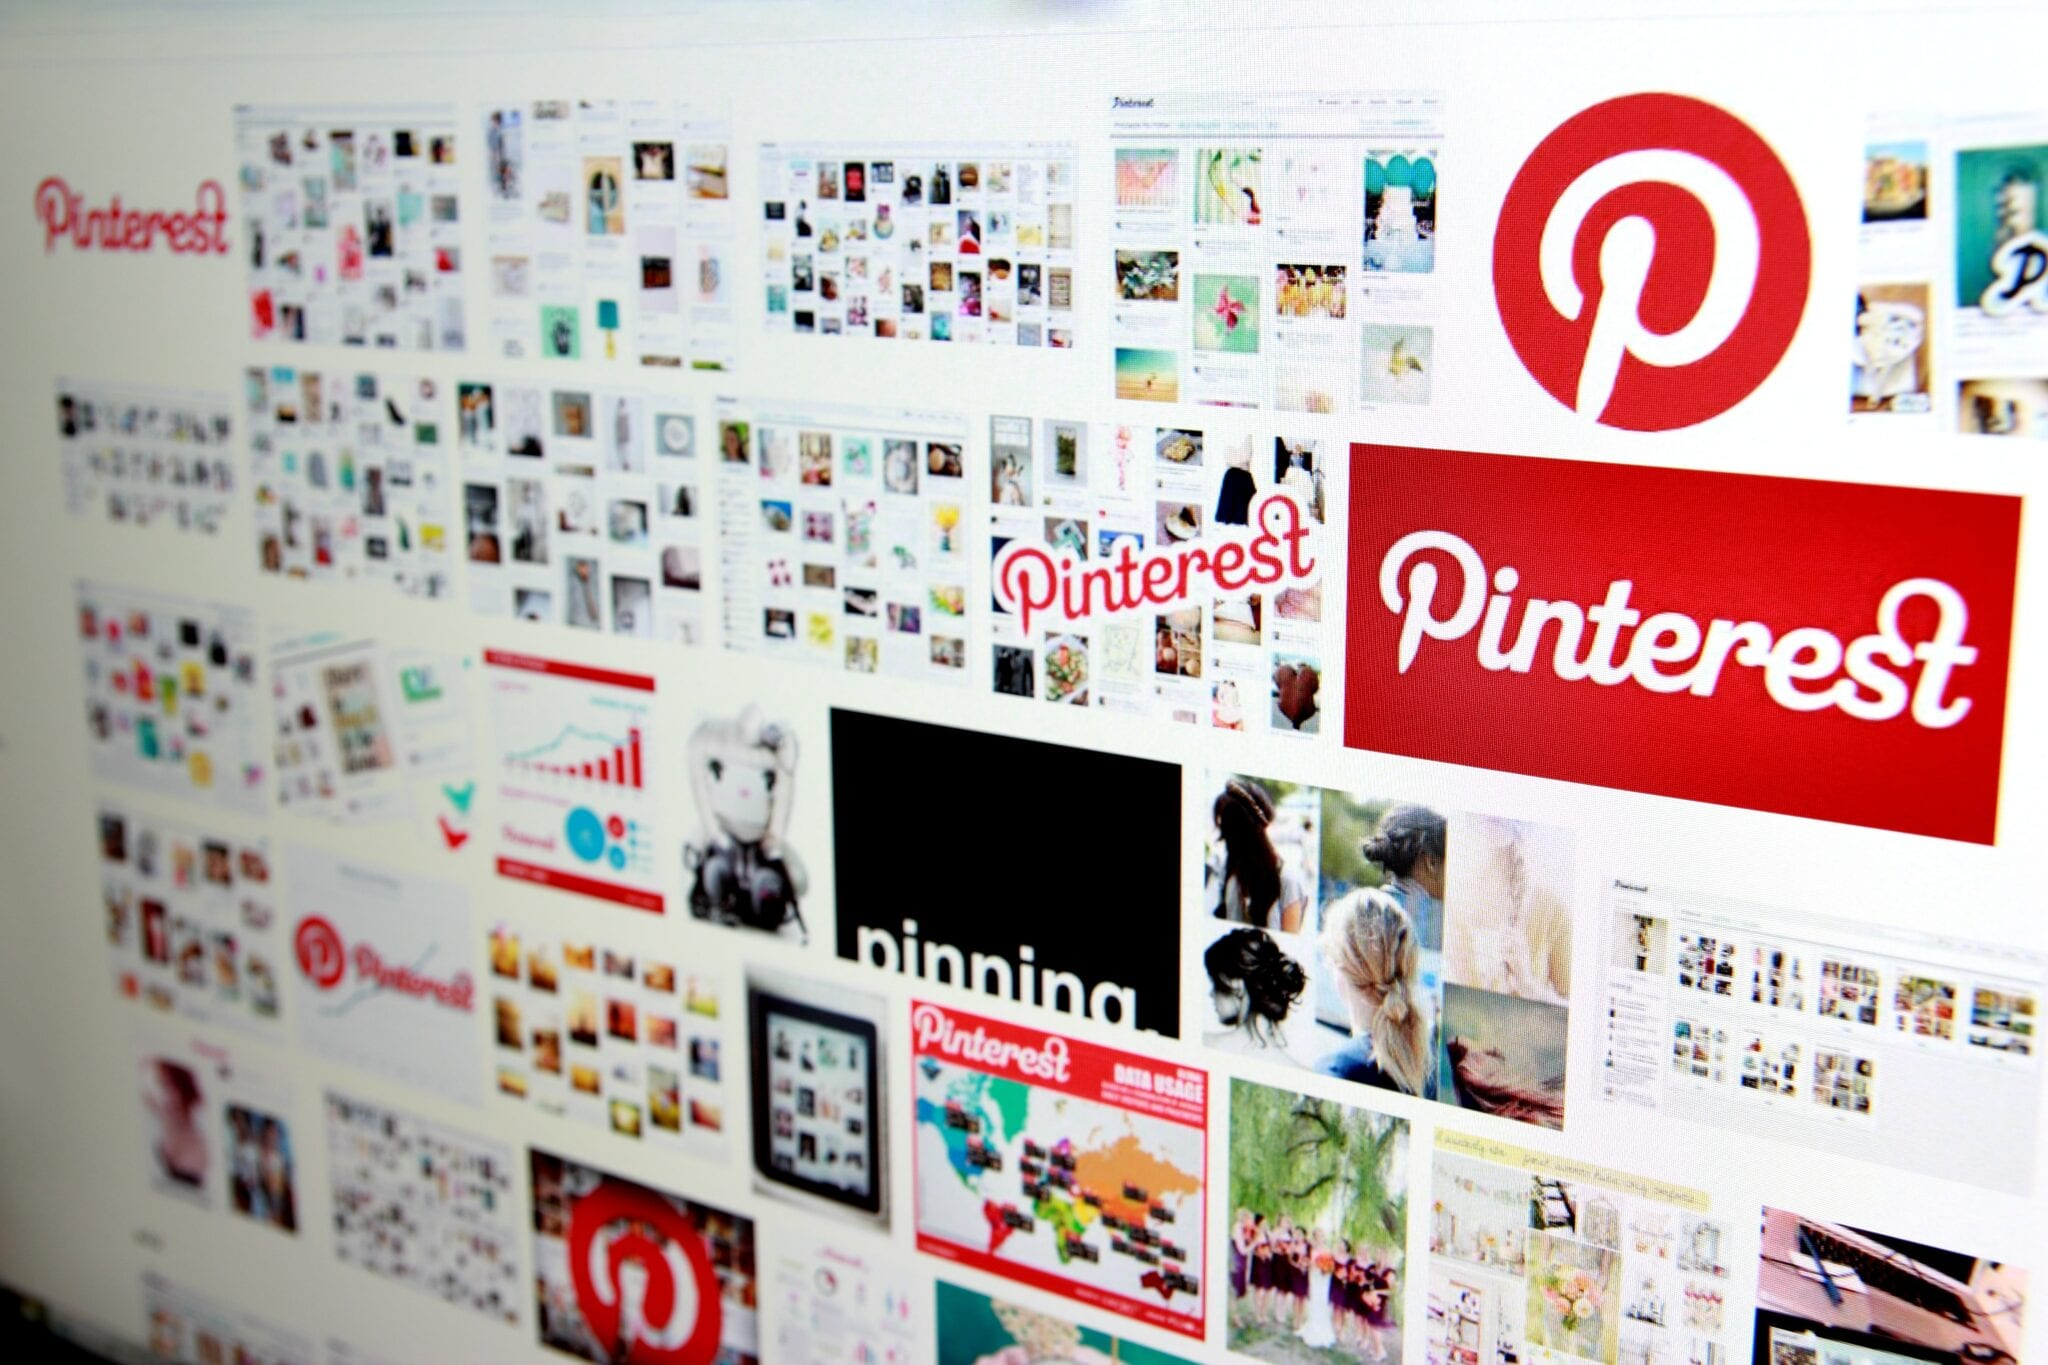 Moving Tips Inspired by Pinterest